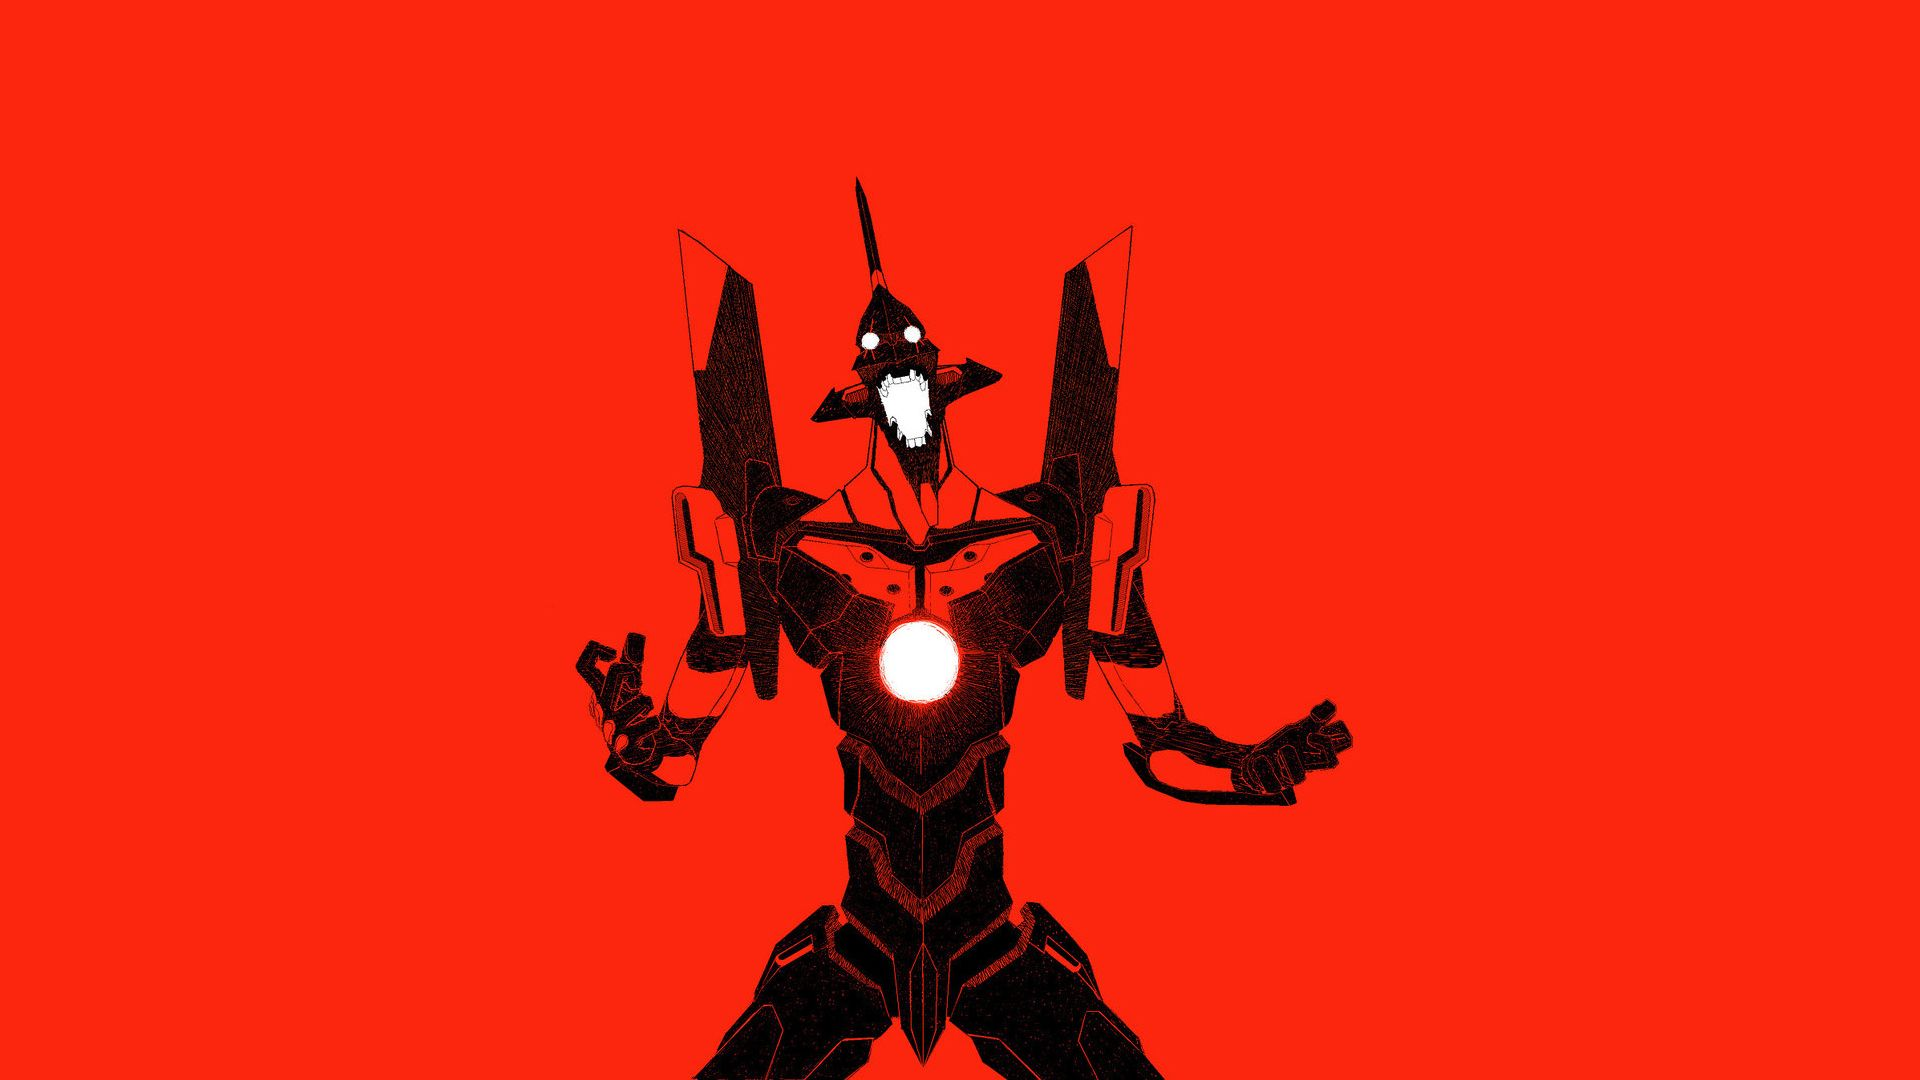 Neon Genesis Evangelion Desktop Wallpapers Top Free Neon Genesis Evangelion Desktop Backgrounds Wallpaperaccess